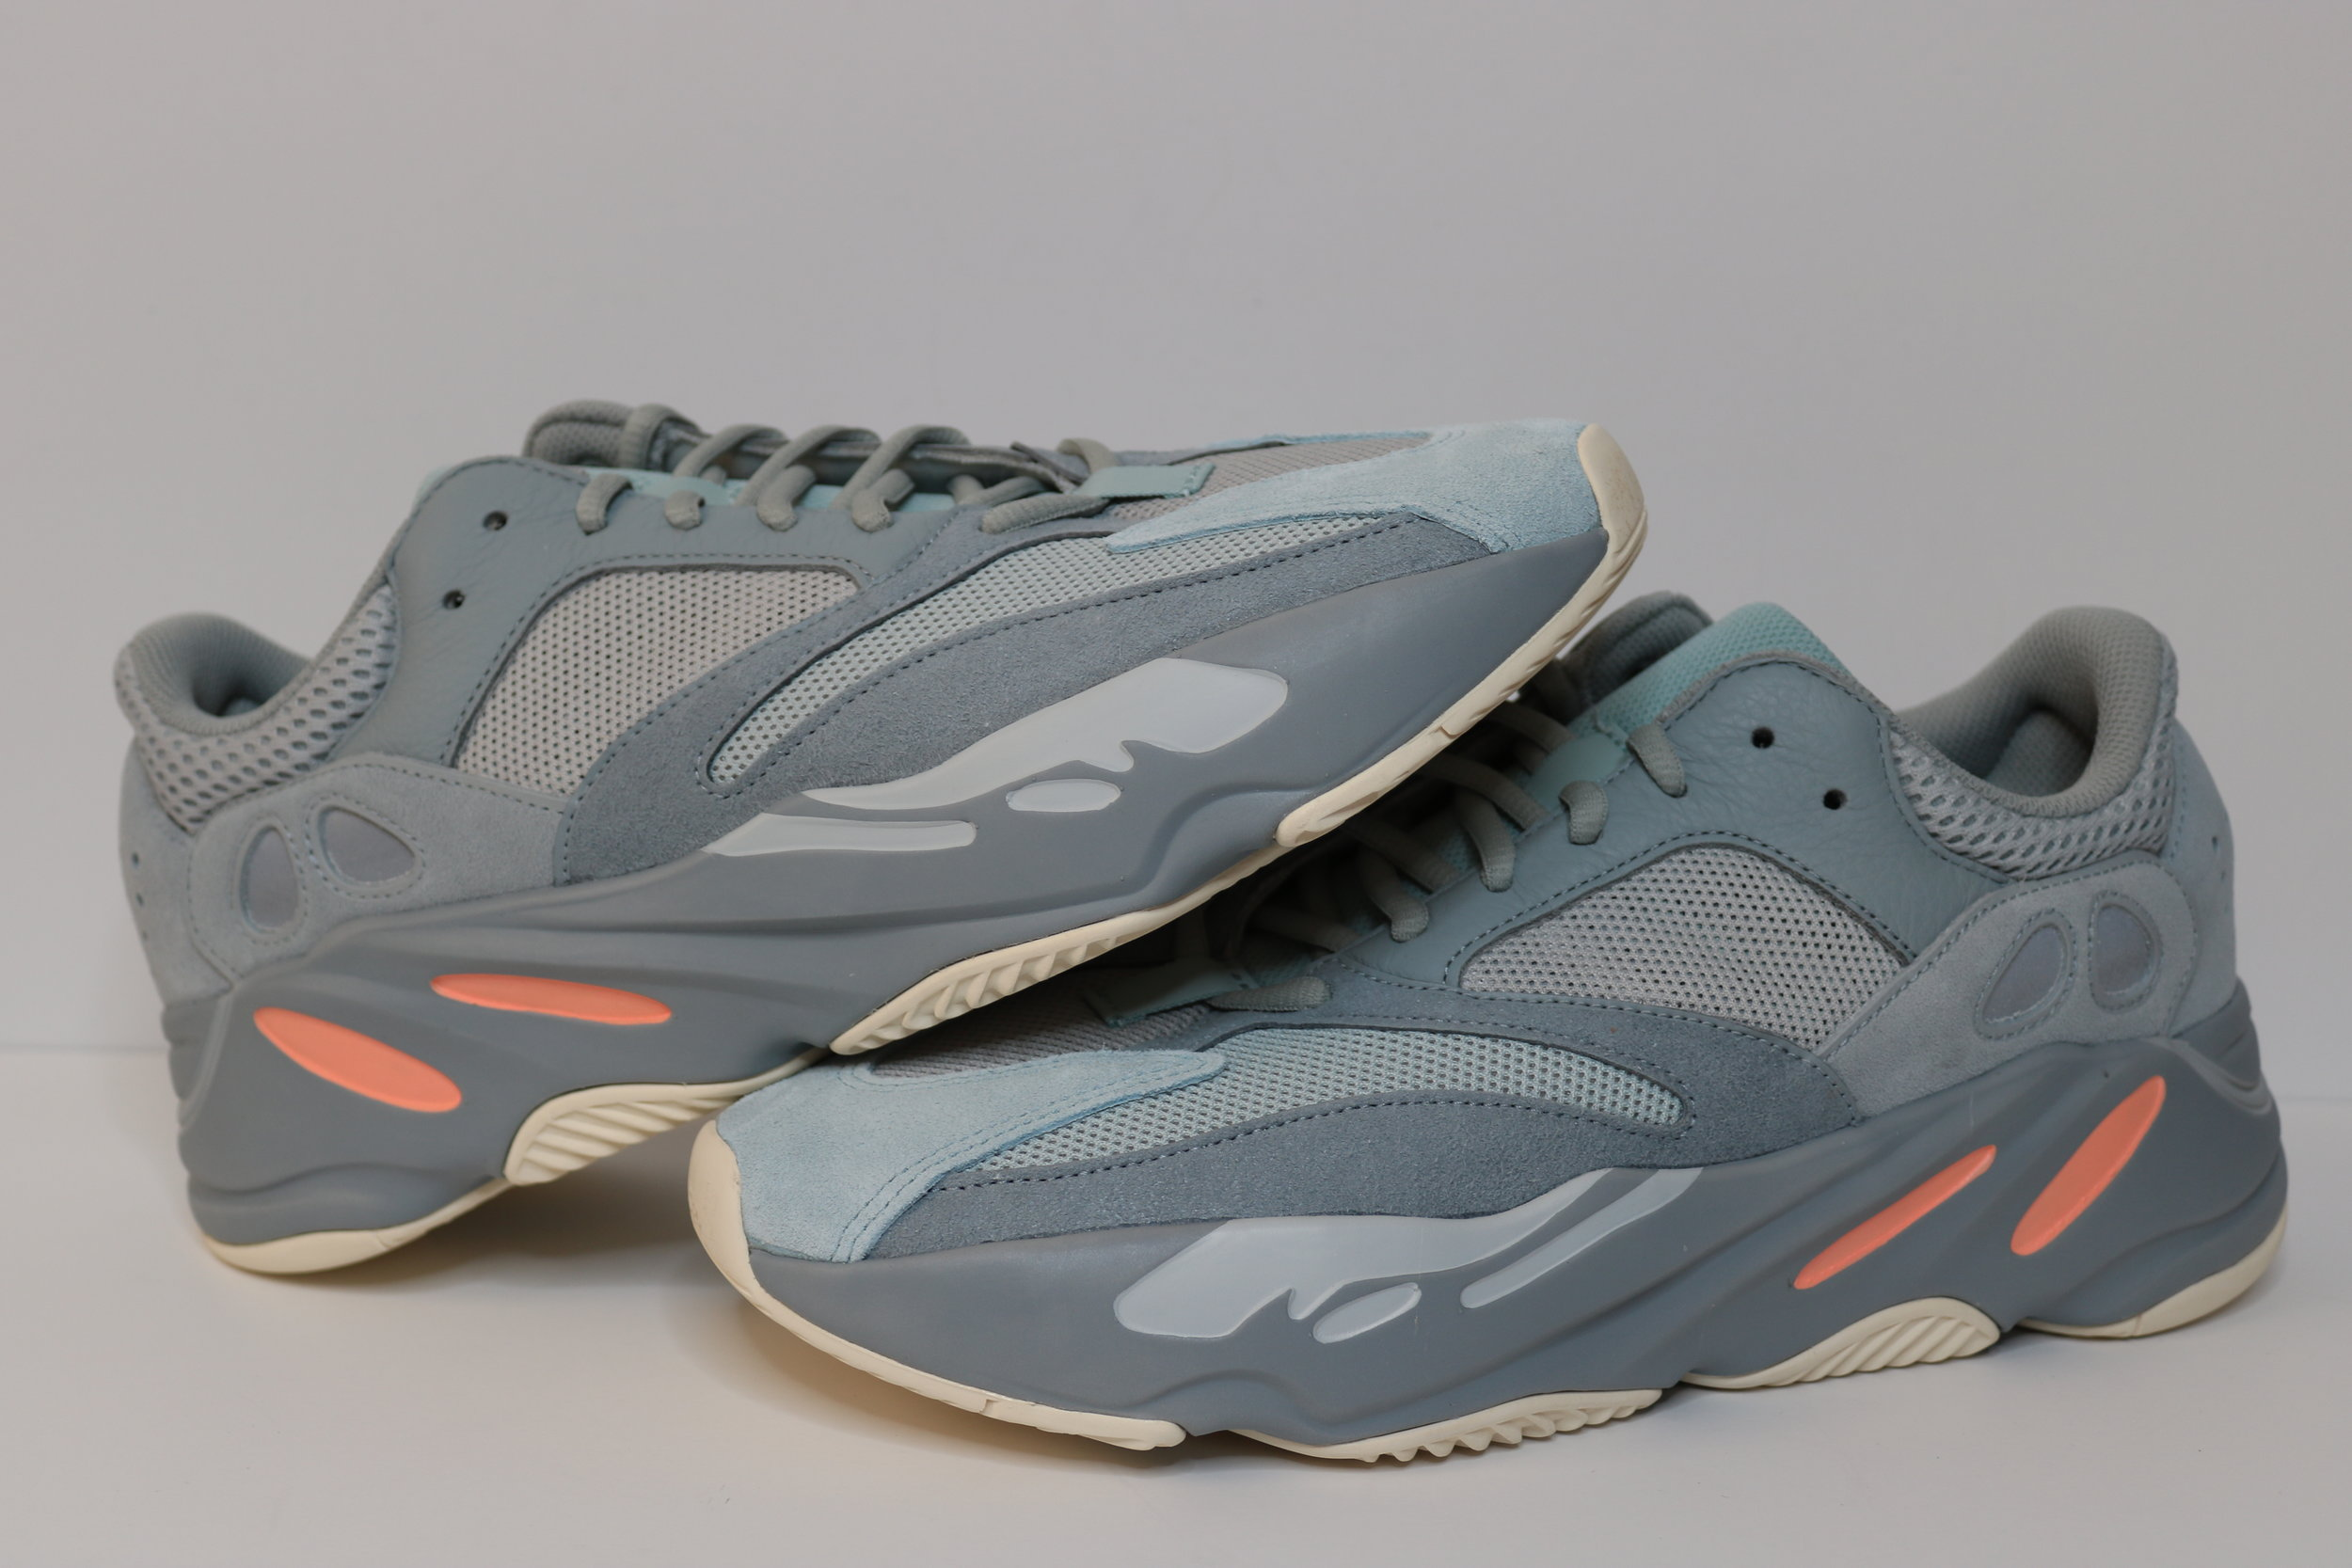 new products ad558 65ce8 US 10.5 - ADIDAS YEEZY BOOST 700